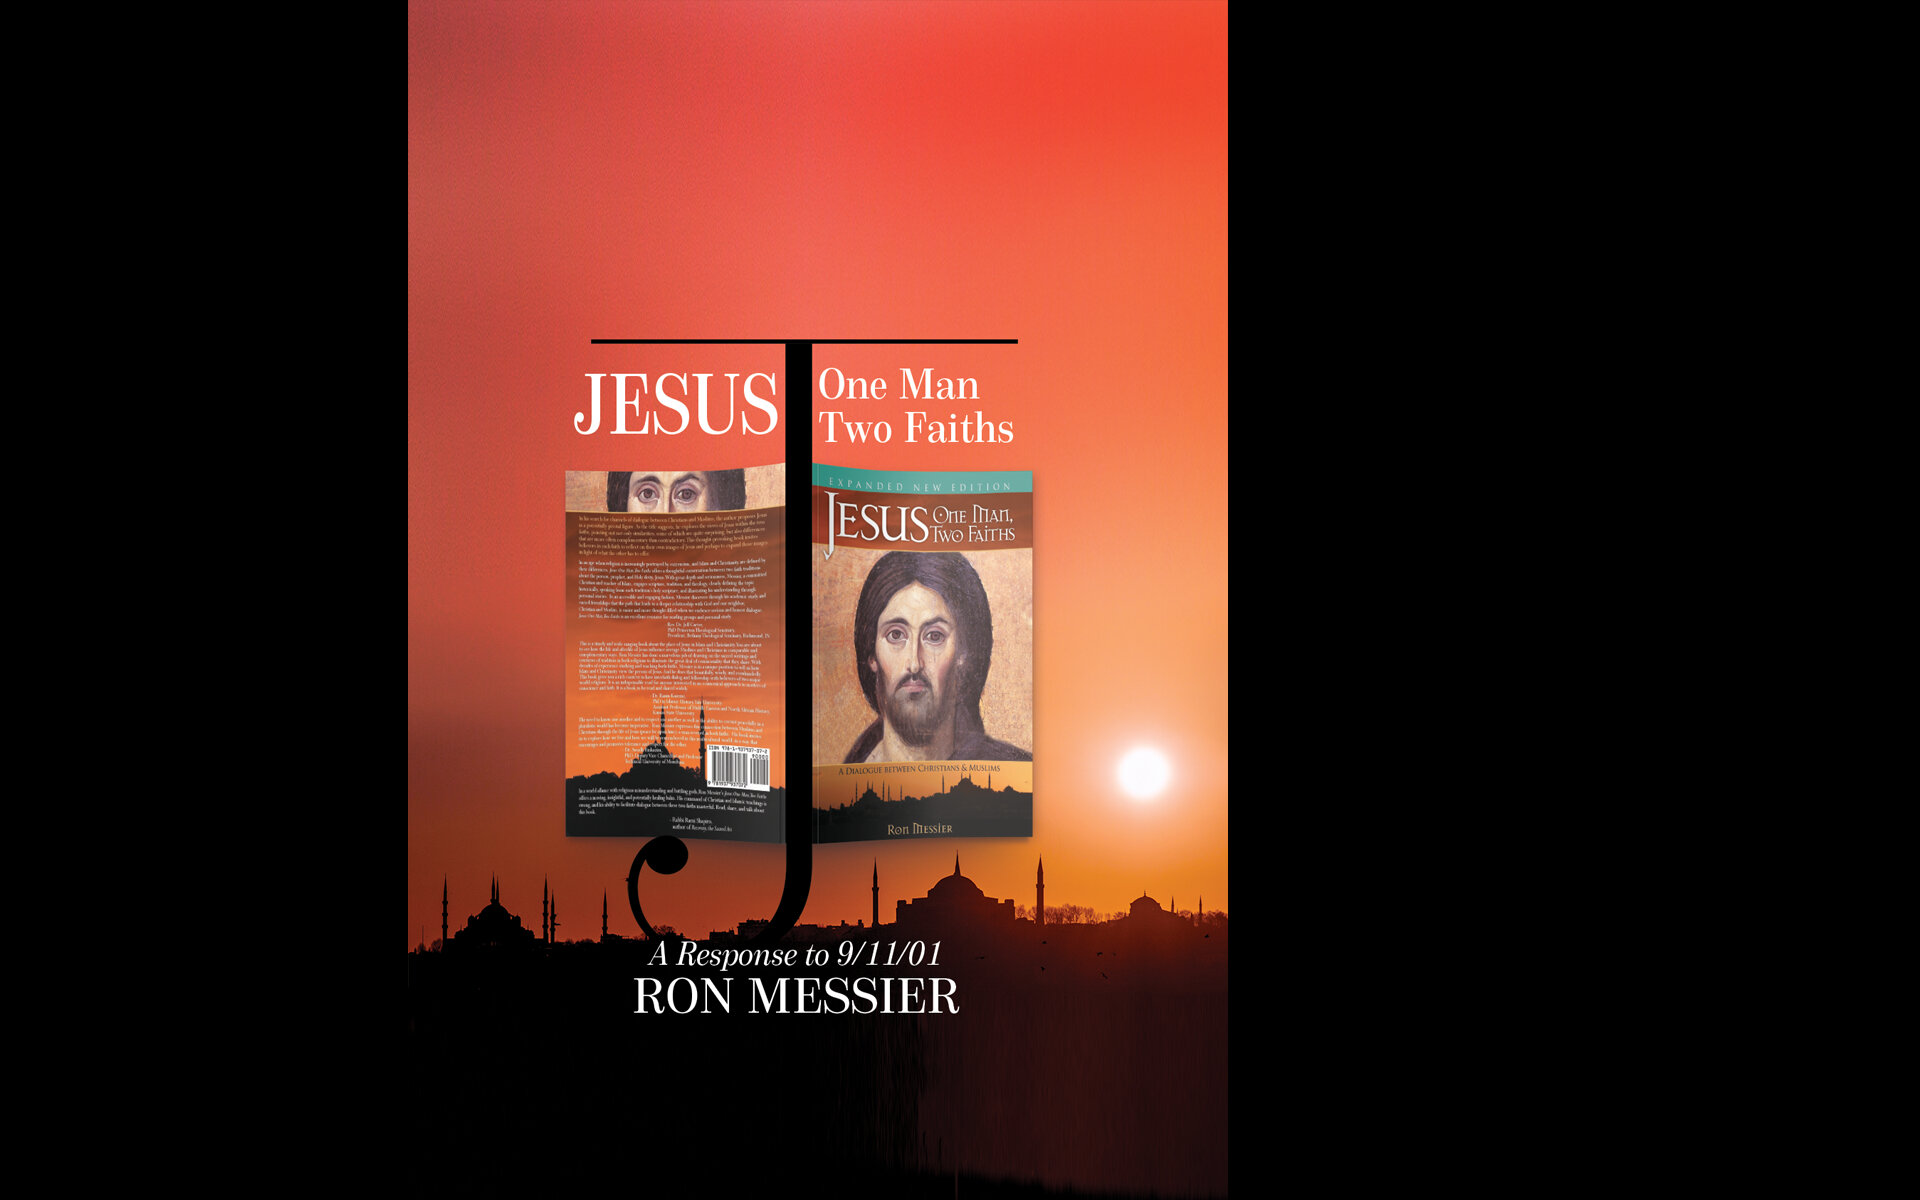 Jesus: One Man, Two Faiths: A Response to 9/11/01